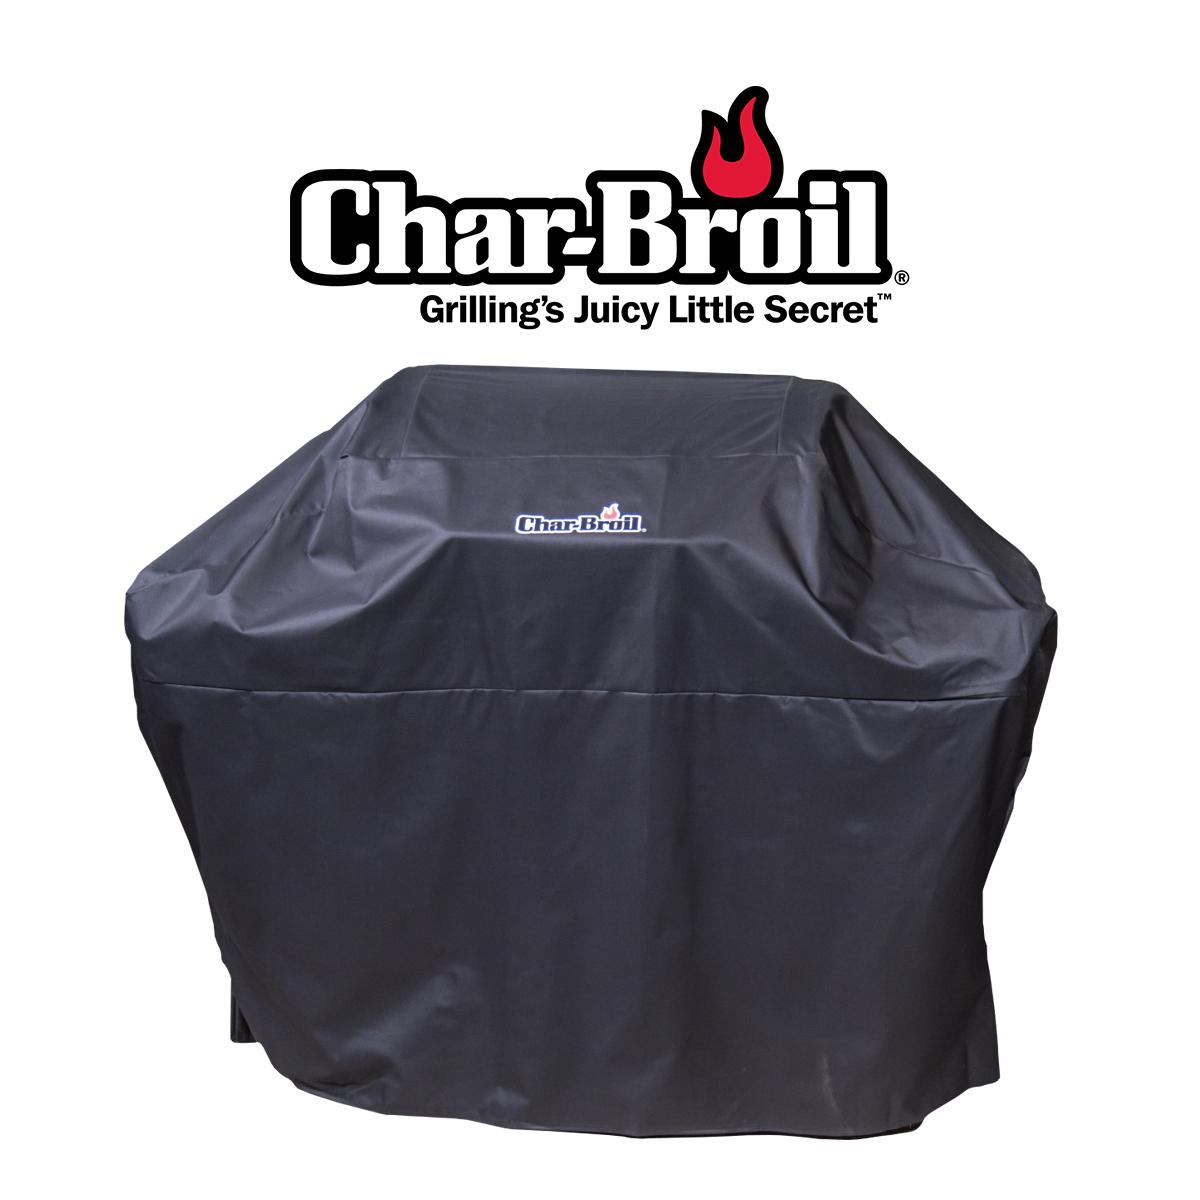 [Local Ready Stock] Char-Broil Universal BBQ 2 - 3 Burner Grill Protective Cover (52 Medium)